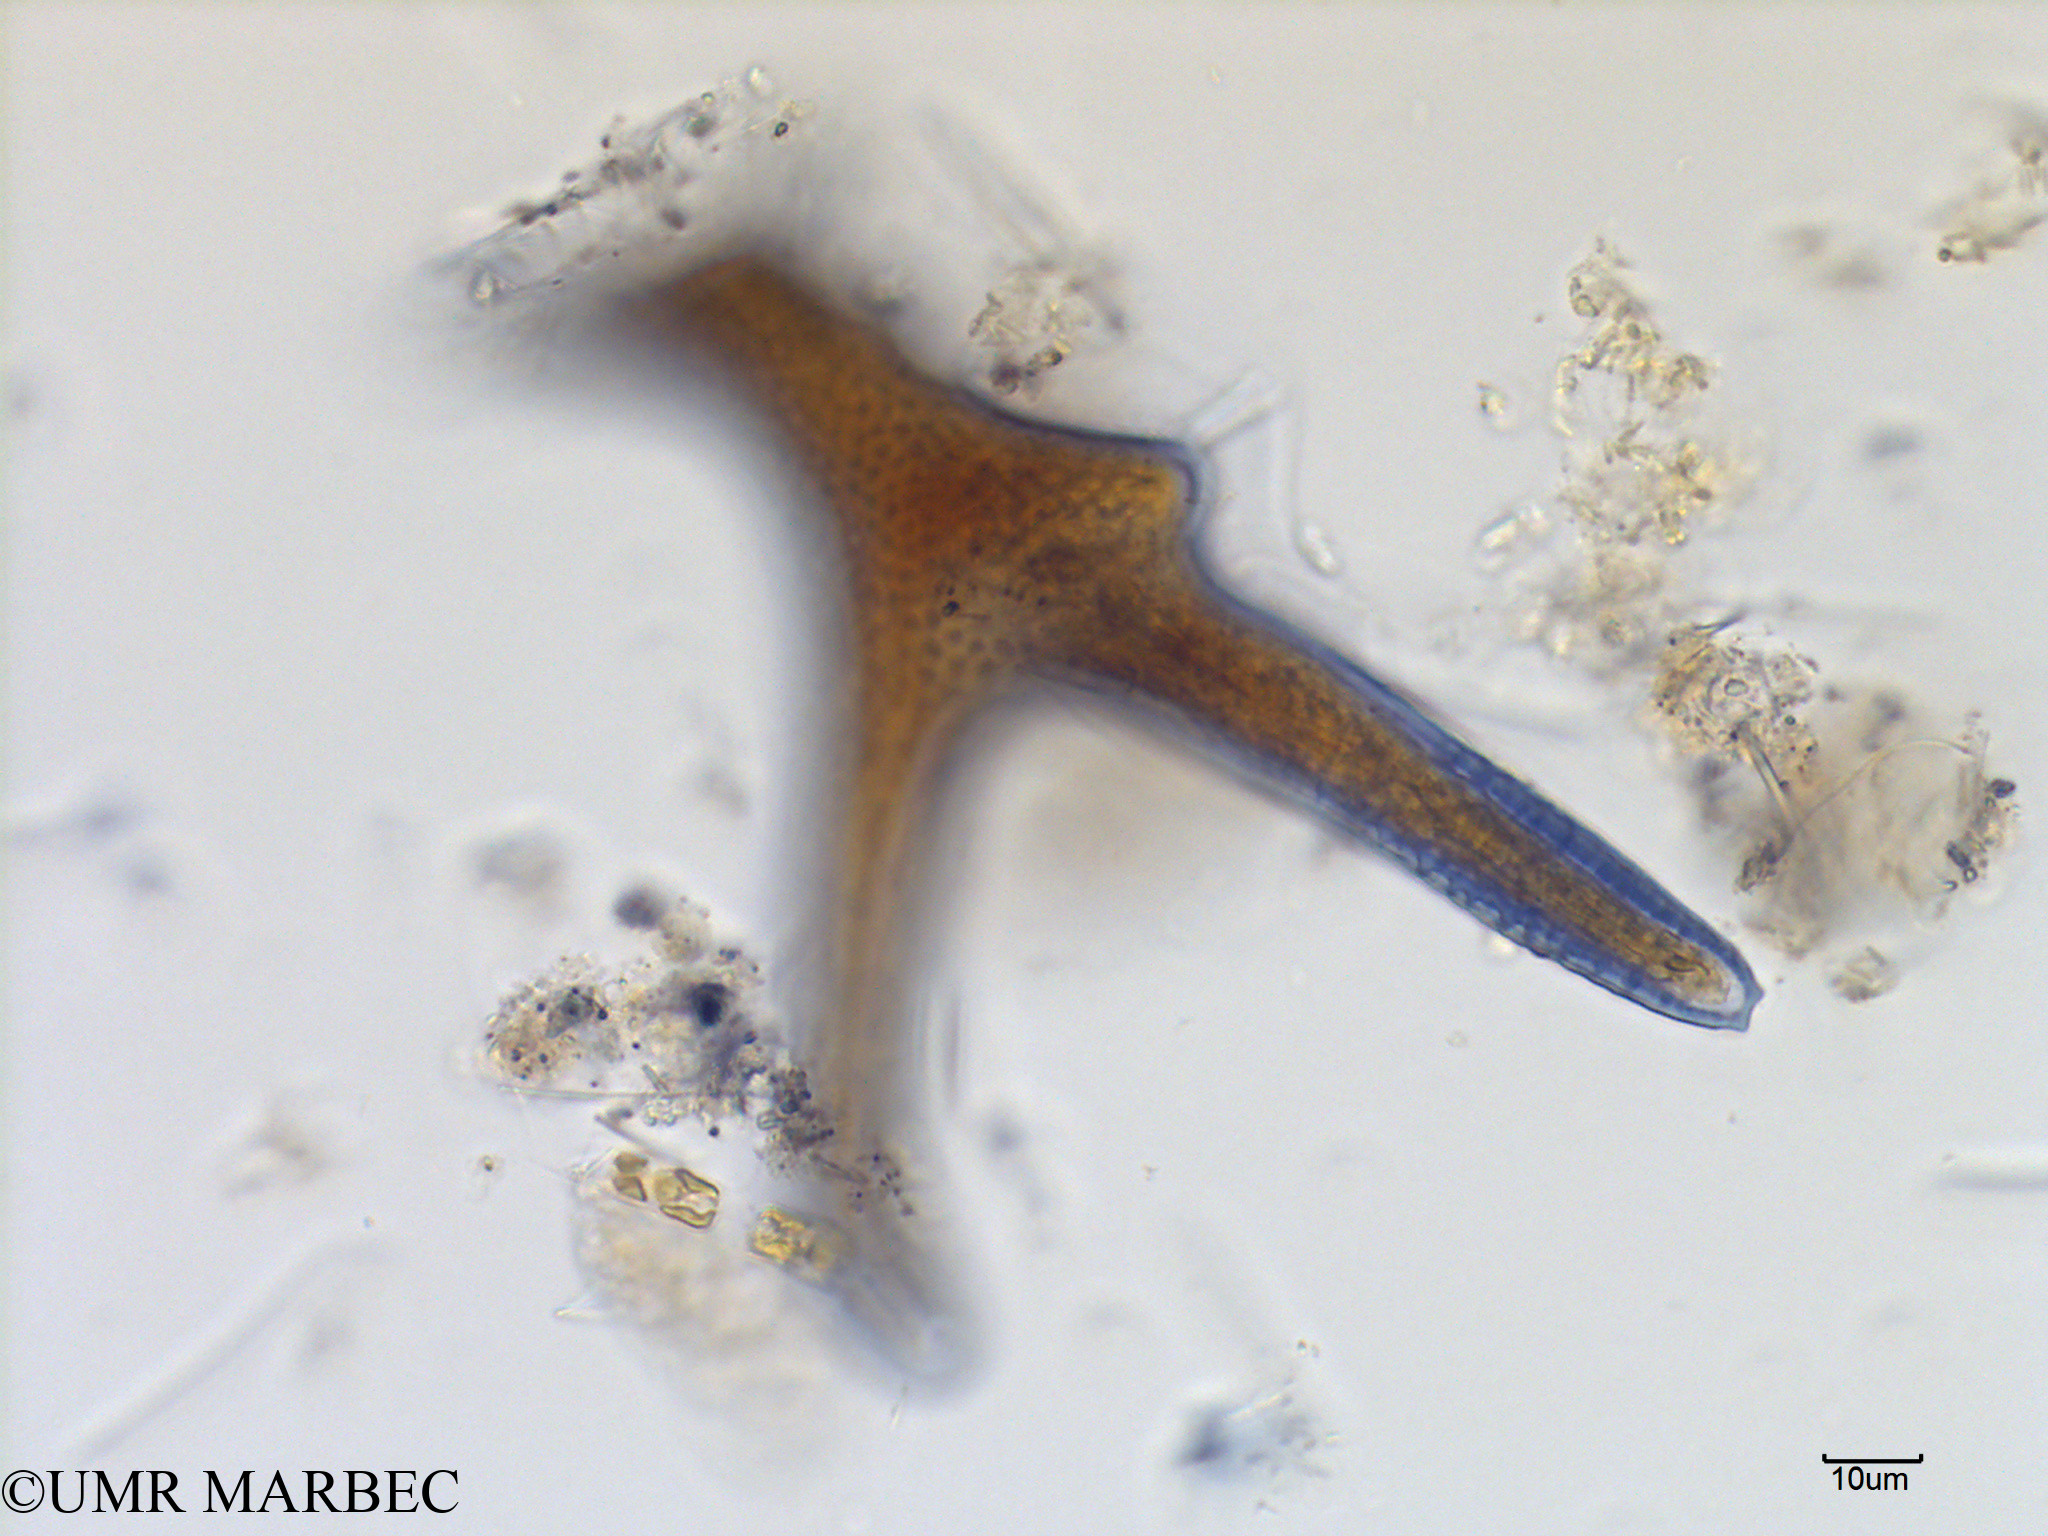 phyto/Scattered_Islands/mayotte_lagoon/SIREME May 2016/Dinophysis miles (MAY8_dino a identifier-9).tif(copy).jpg